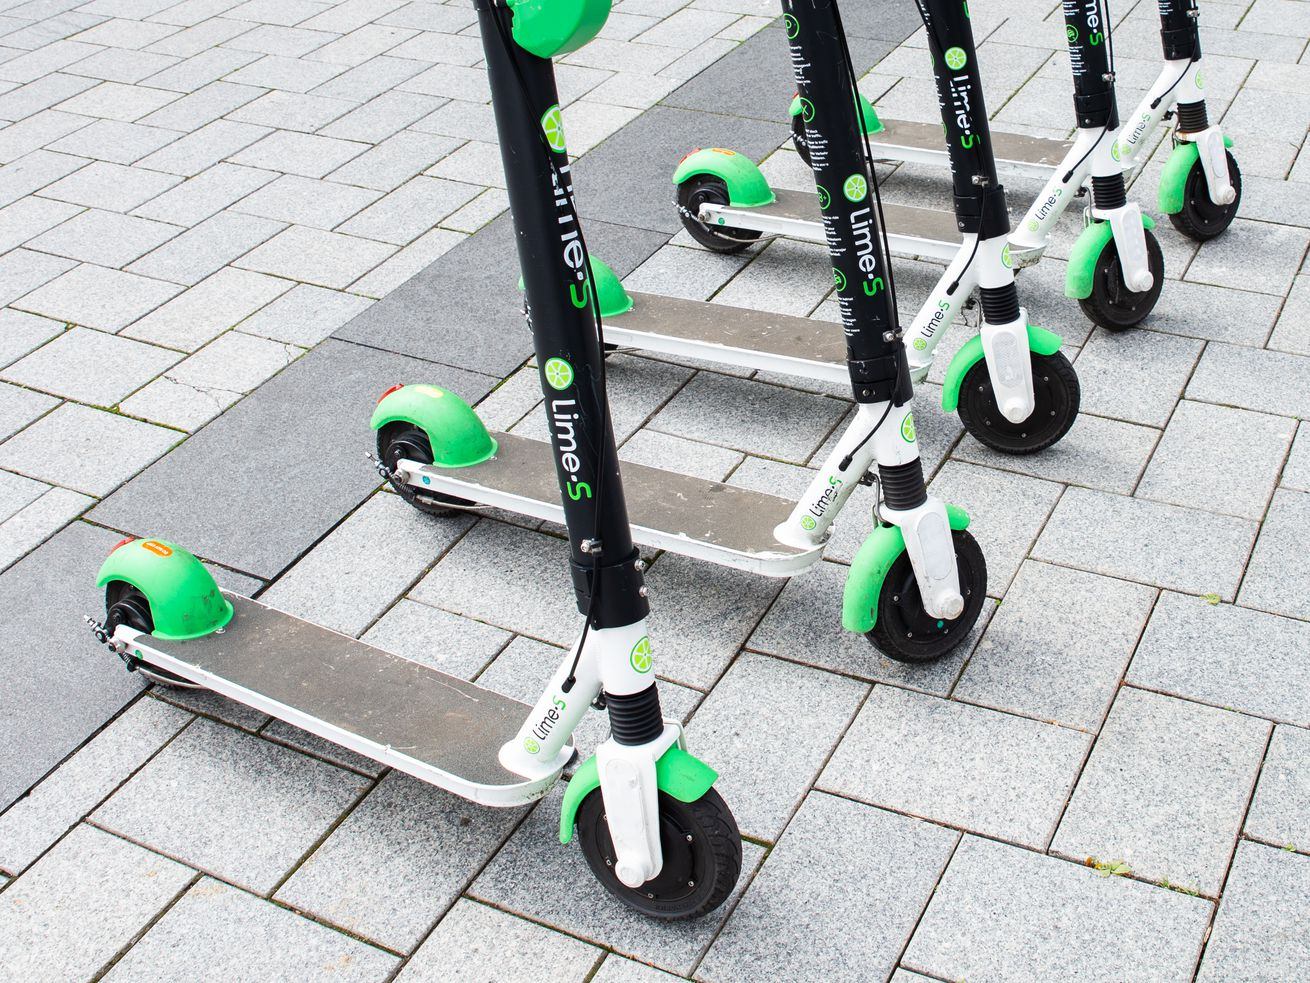 A row of green, white, and black lime electric scooters lined up side by side on a sidewalk of rectangular pavers.